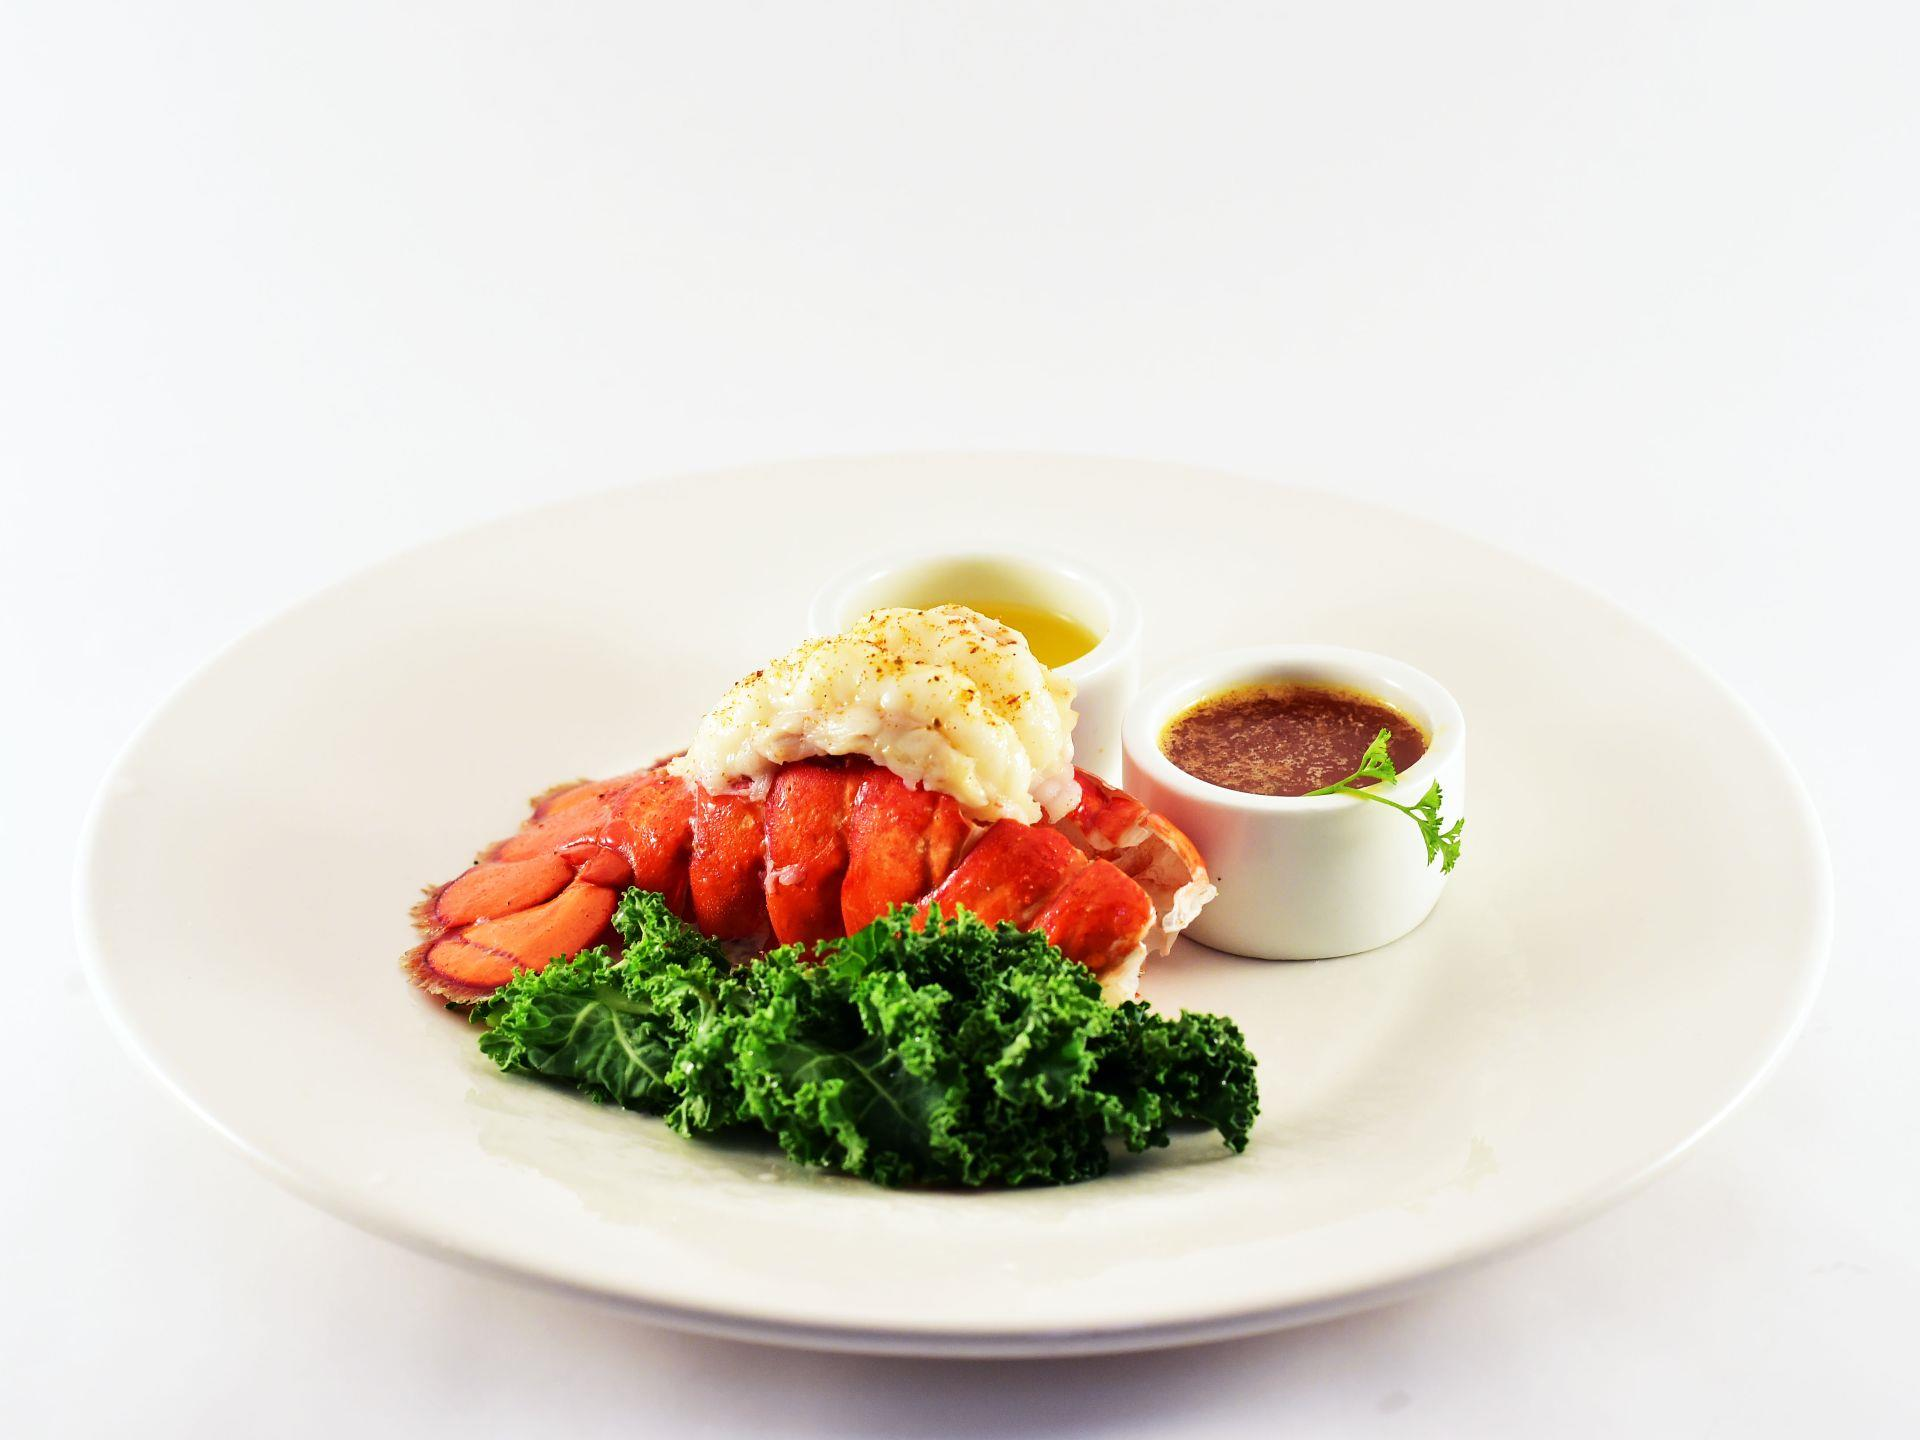 Steamed lobster tail with butter, coctail sauce and lettuce leaf